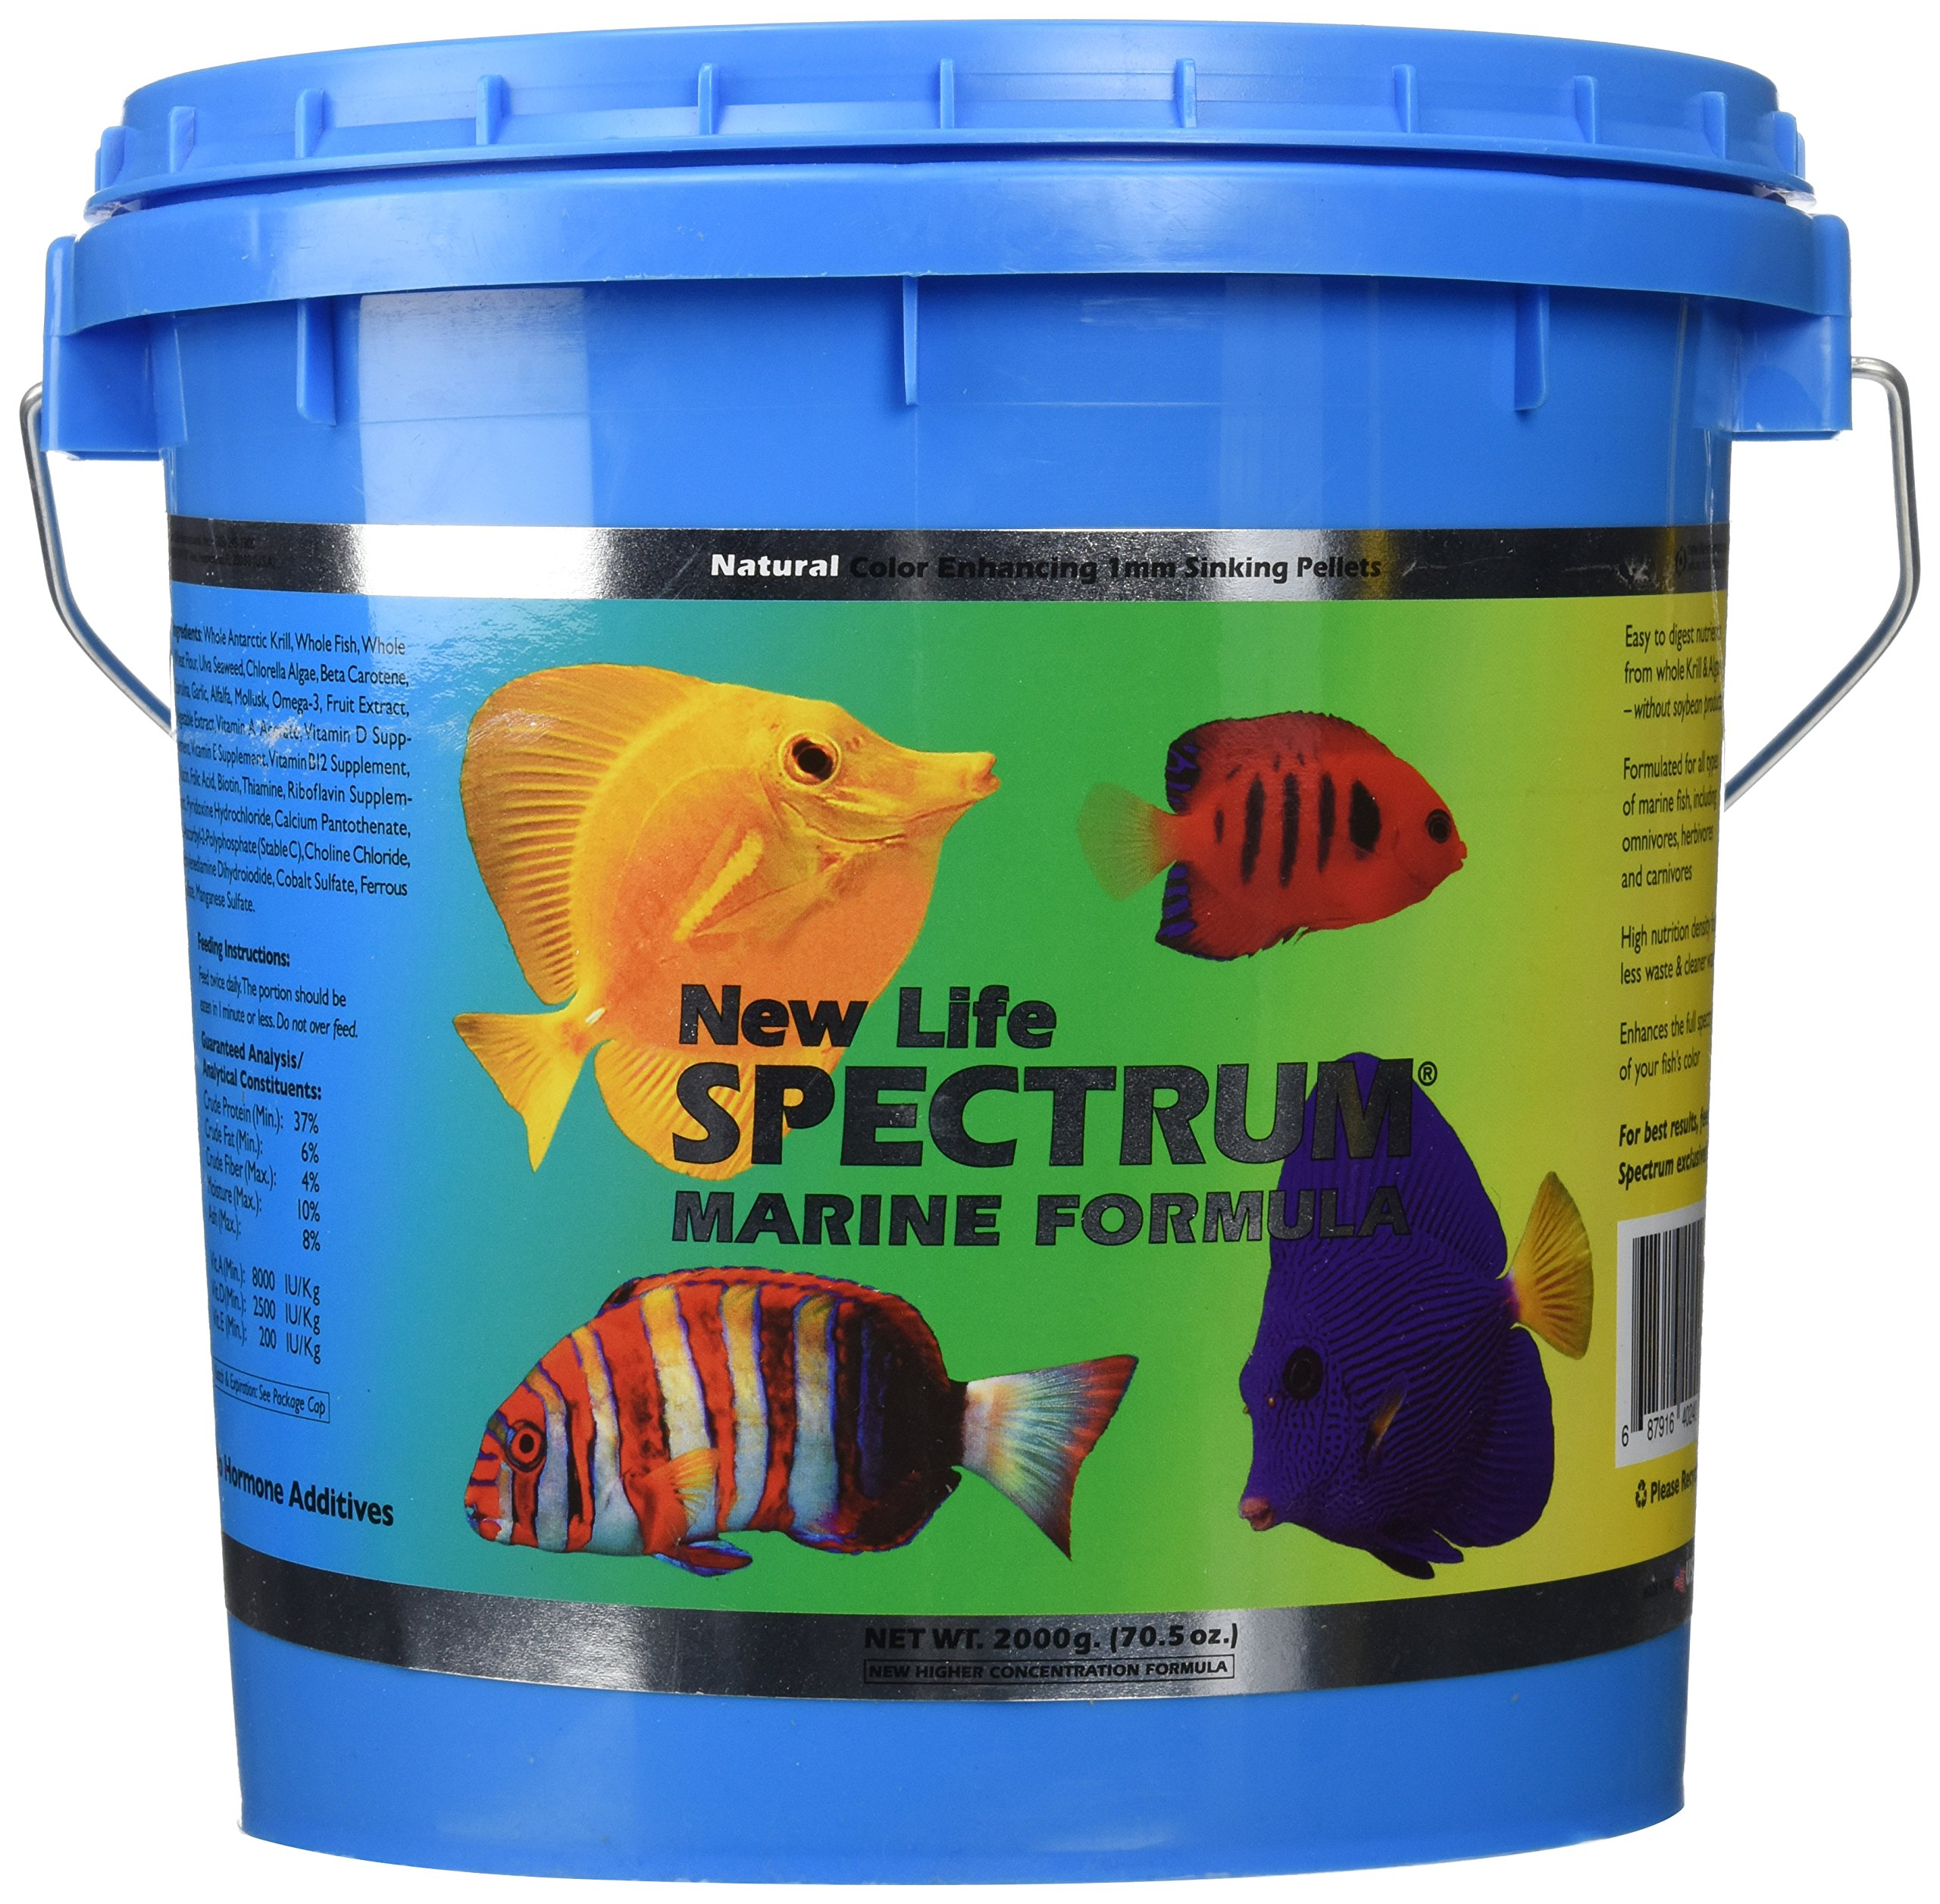 New Life Spectrum Marine Fish Formula 1mm Sinking Saltwater - 2000g by New Life Spectrum (Image #1)